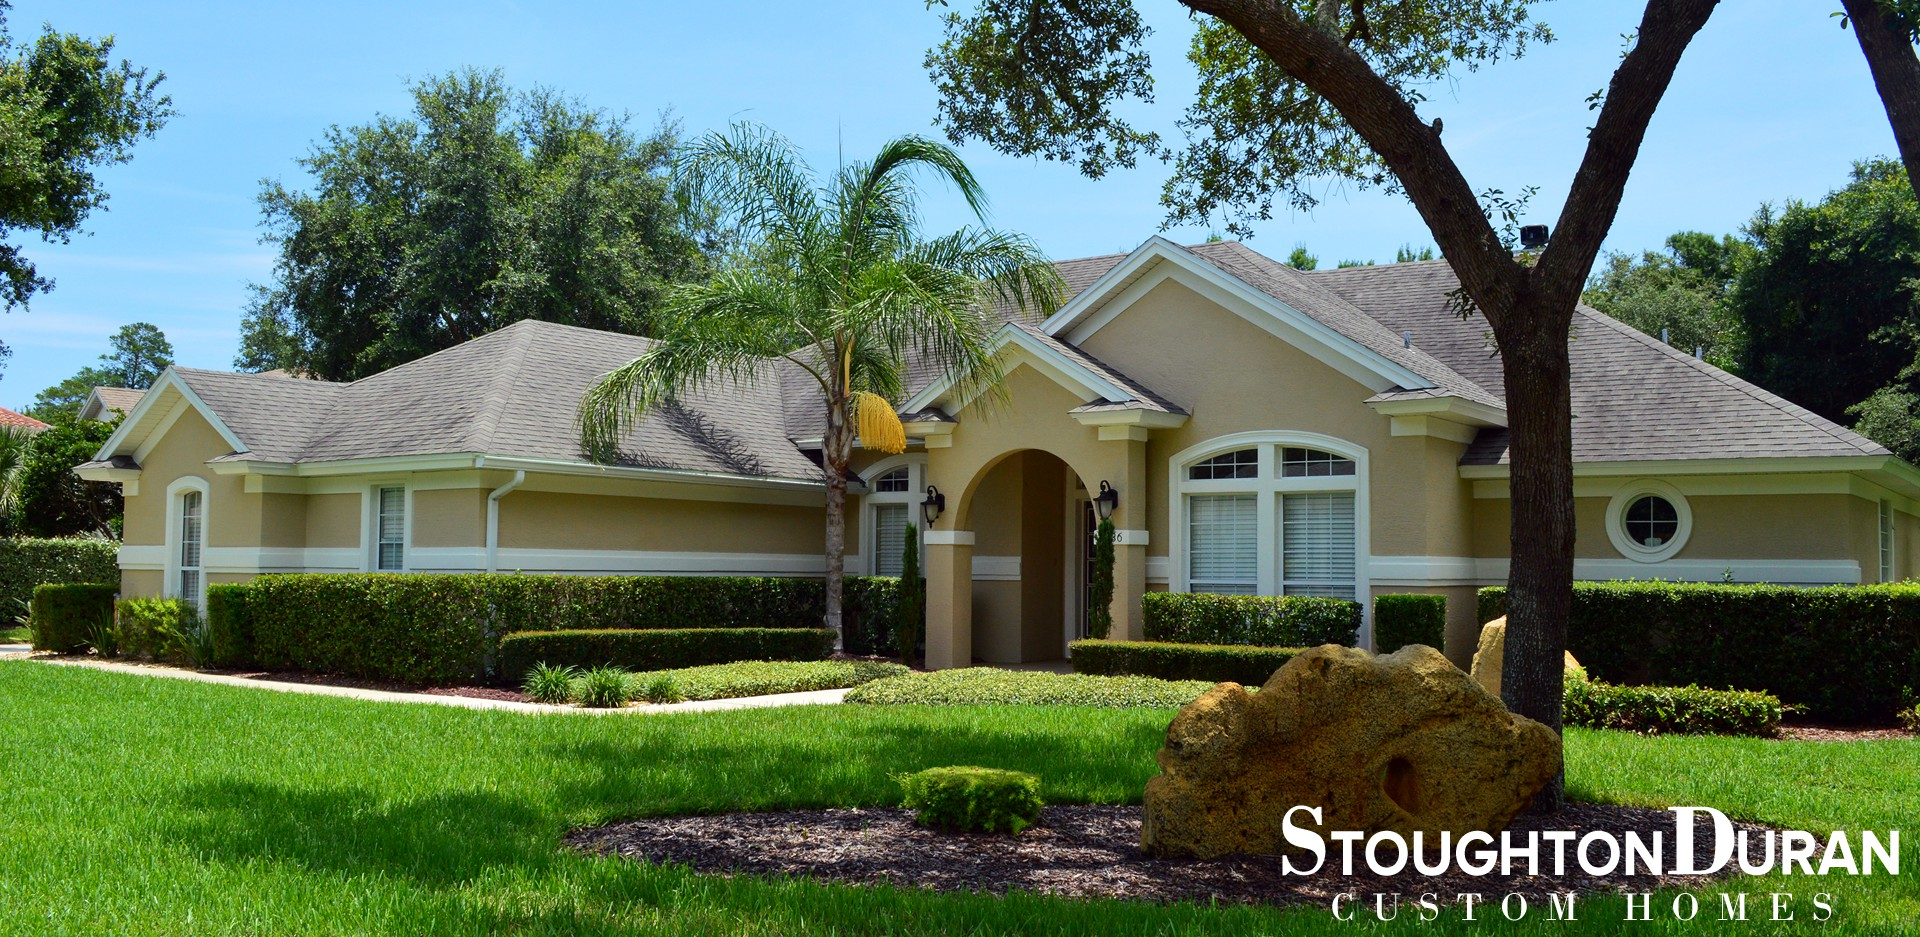 Stoughton Duran Custom Homes Palm Coast And Flagler